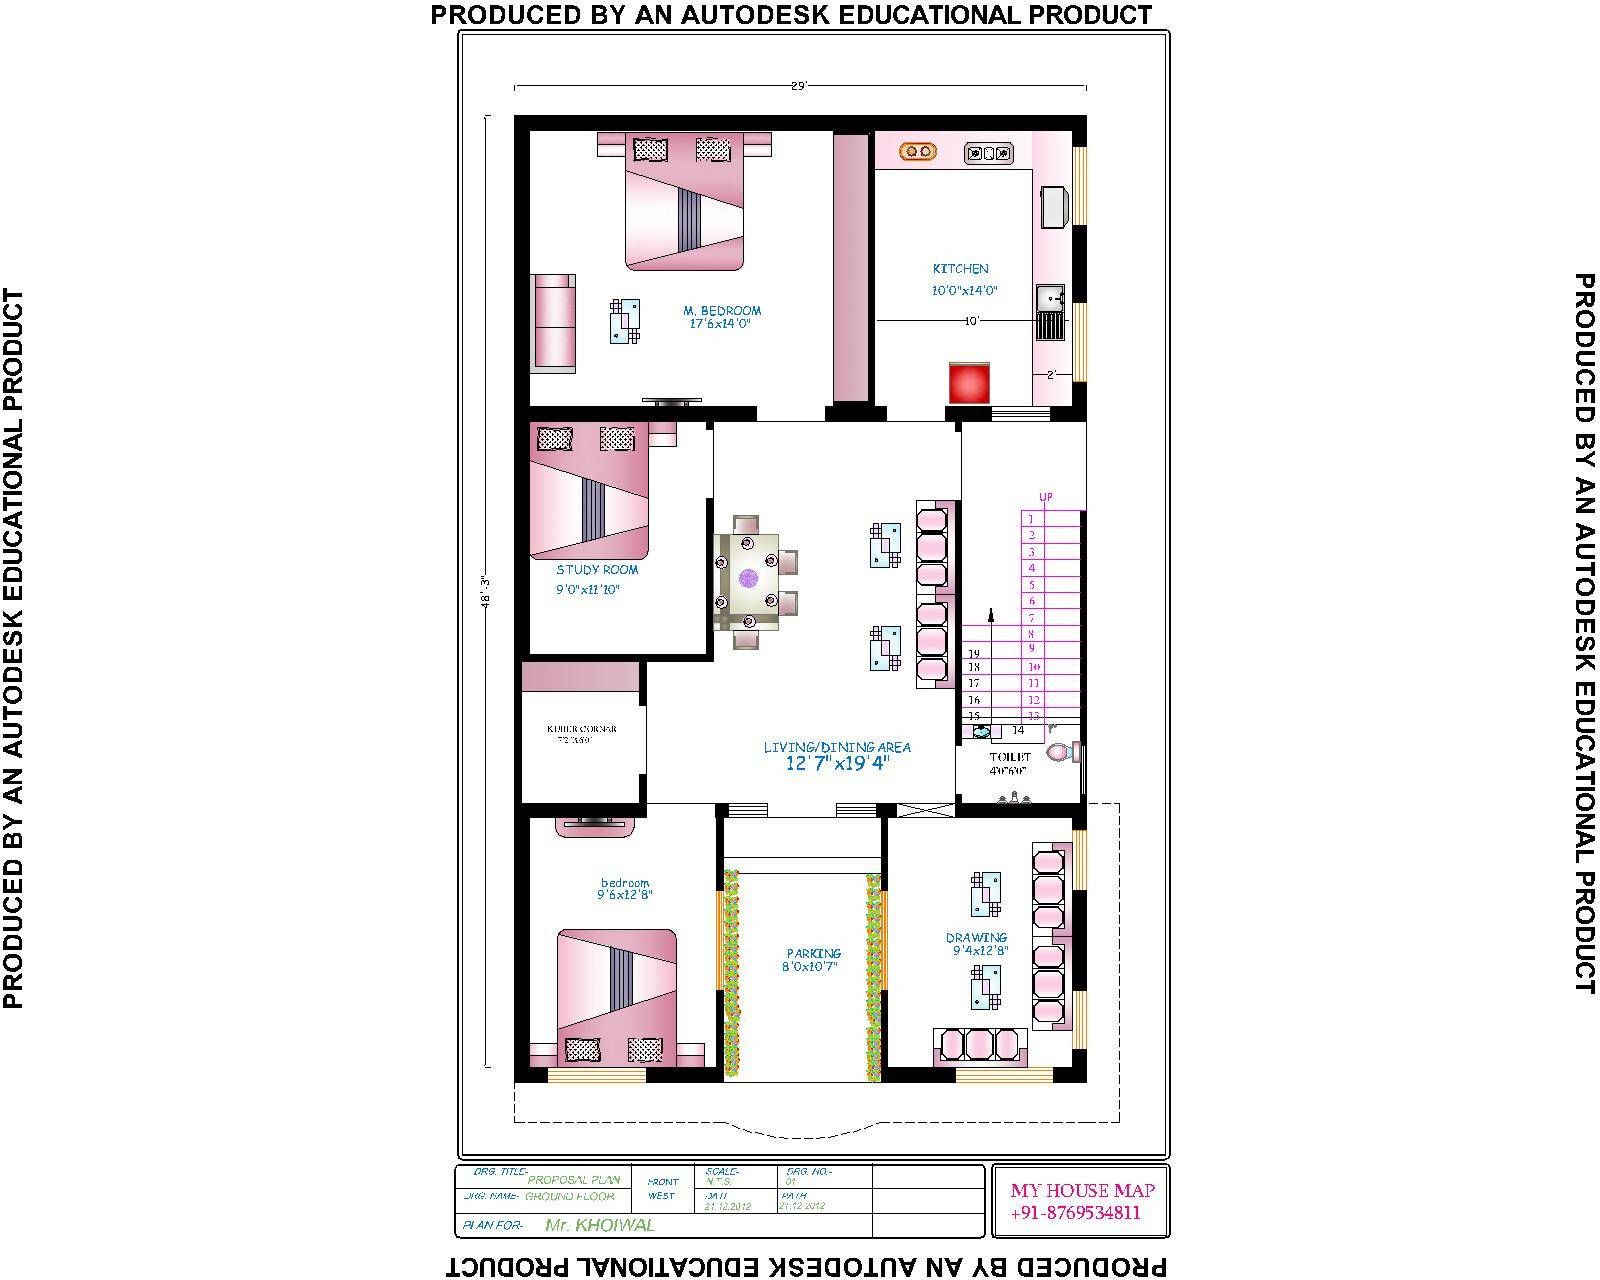 21 Best Photo Of Home Design Map Ideas House Plans